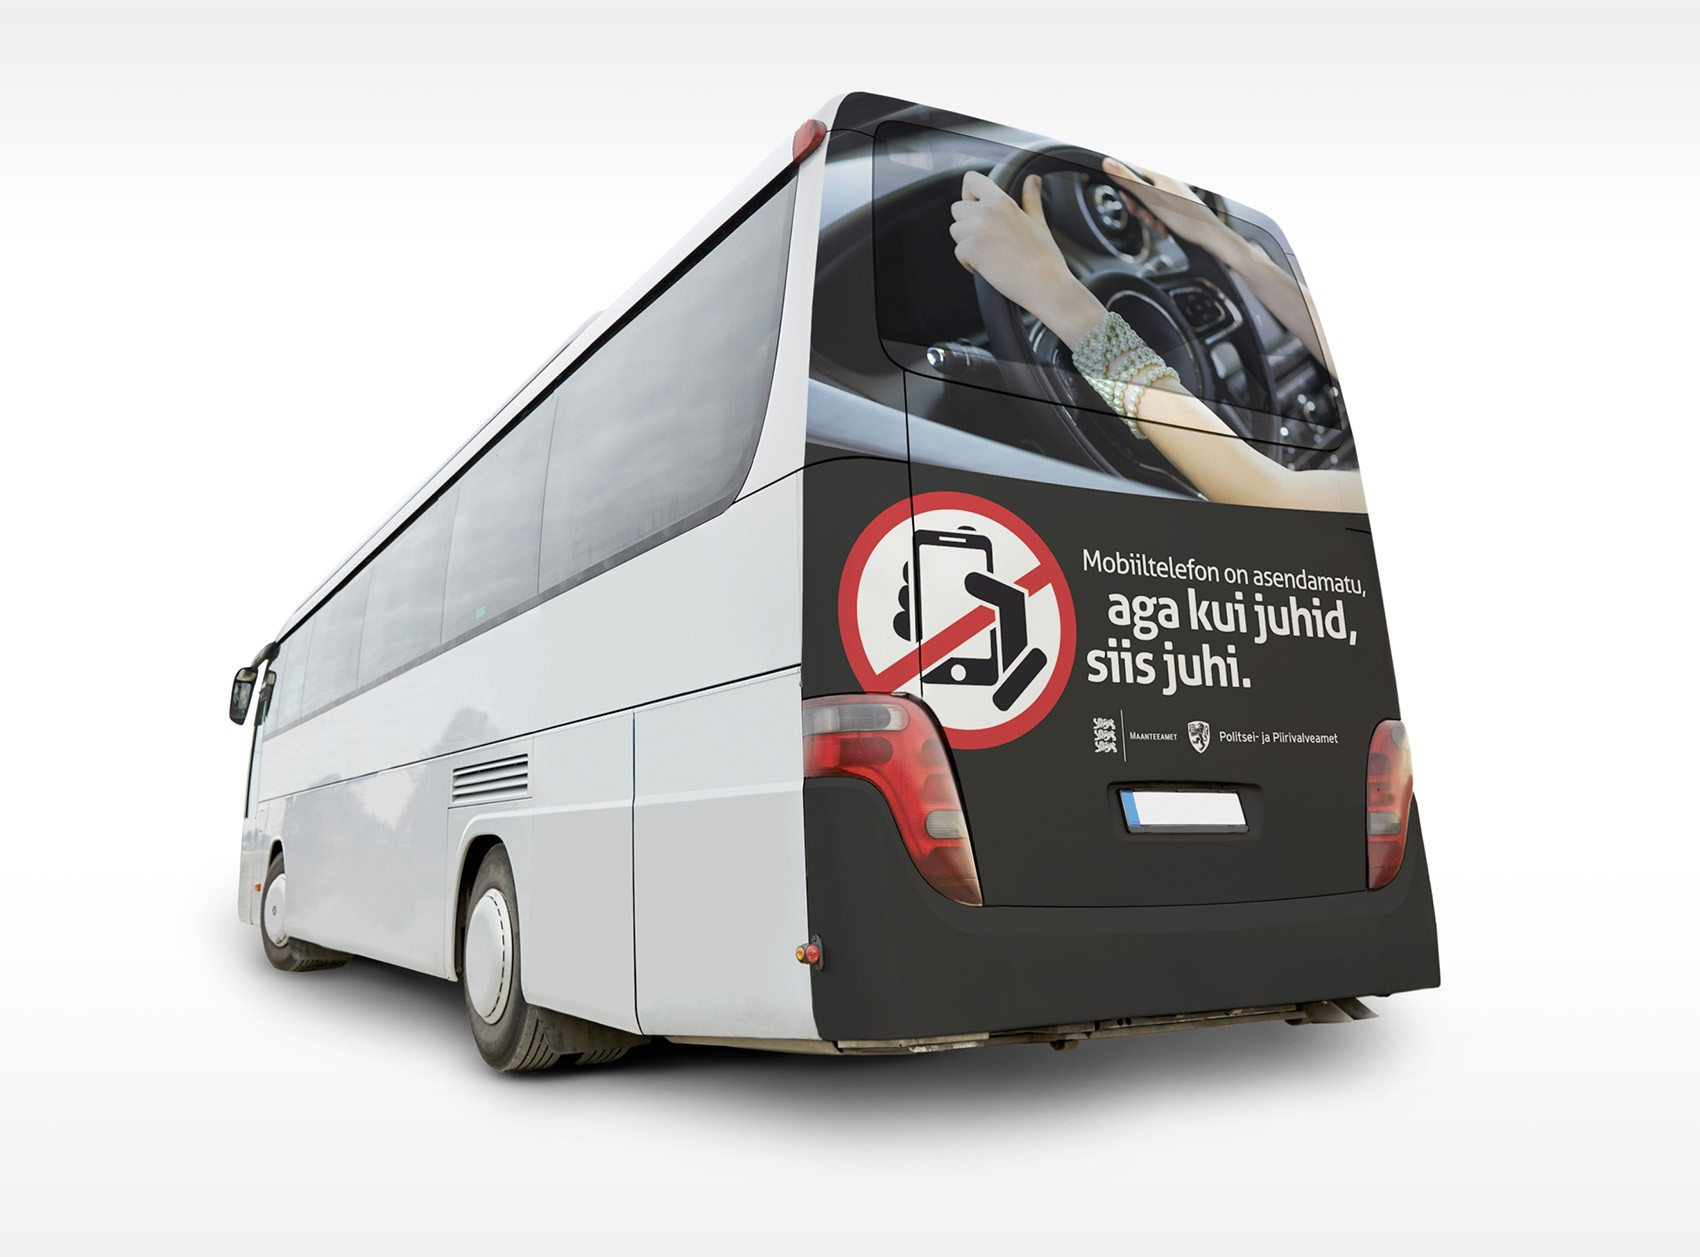 Ad on Bus: If you drive, then drive